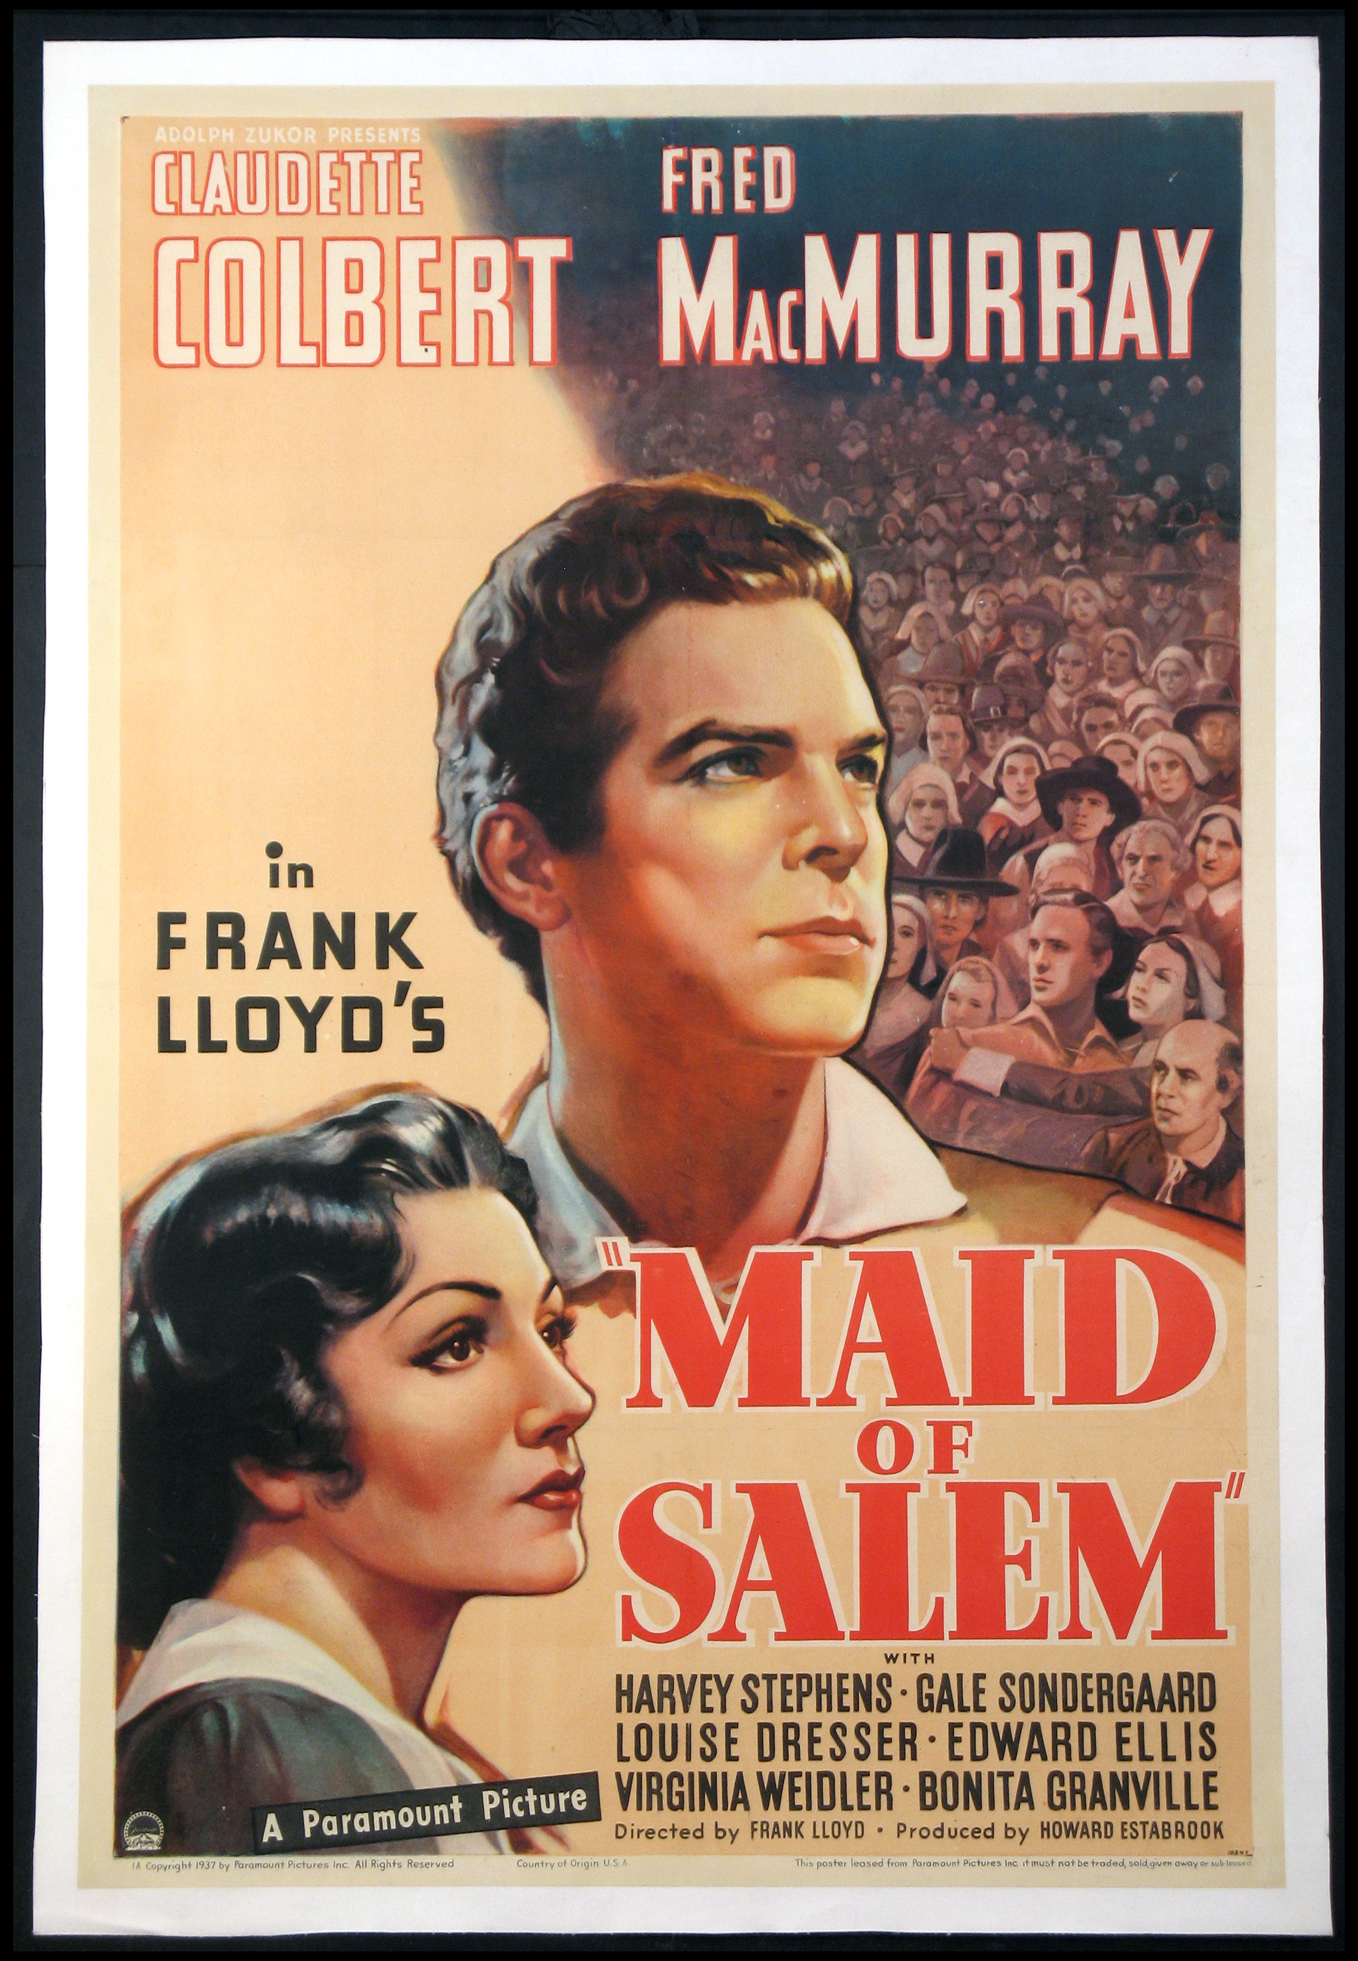 MAID OF SALEM @ FilmPosters.com